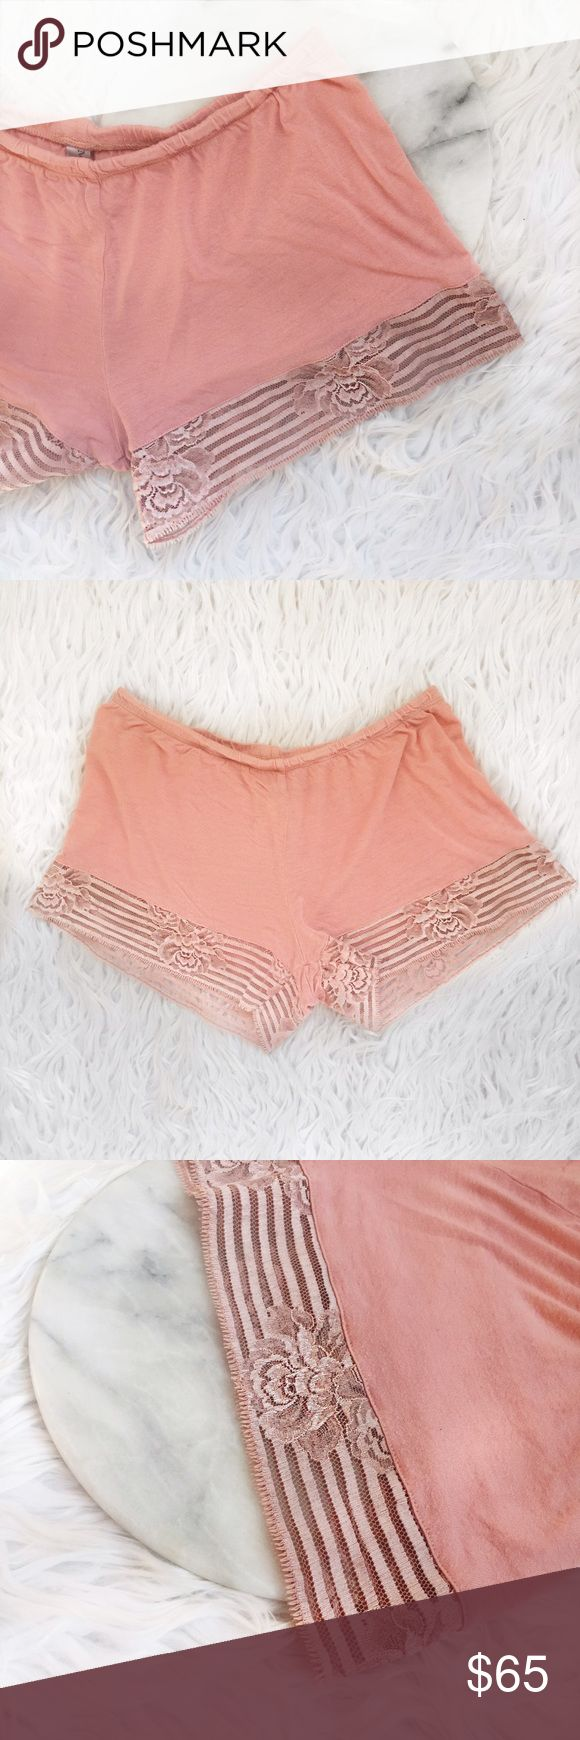 • La Perla • Lace Peach Shorts Adorable lace peach shorts, perfect to use as pajamas! Used condition. La Perla Shorts